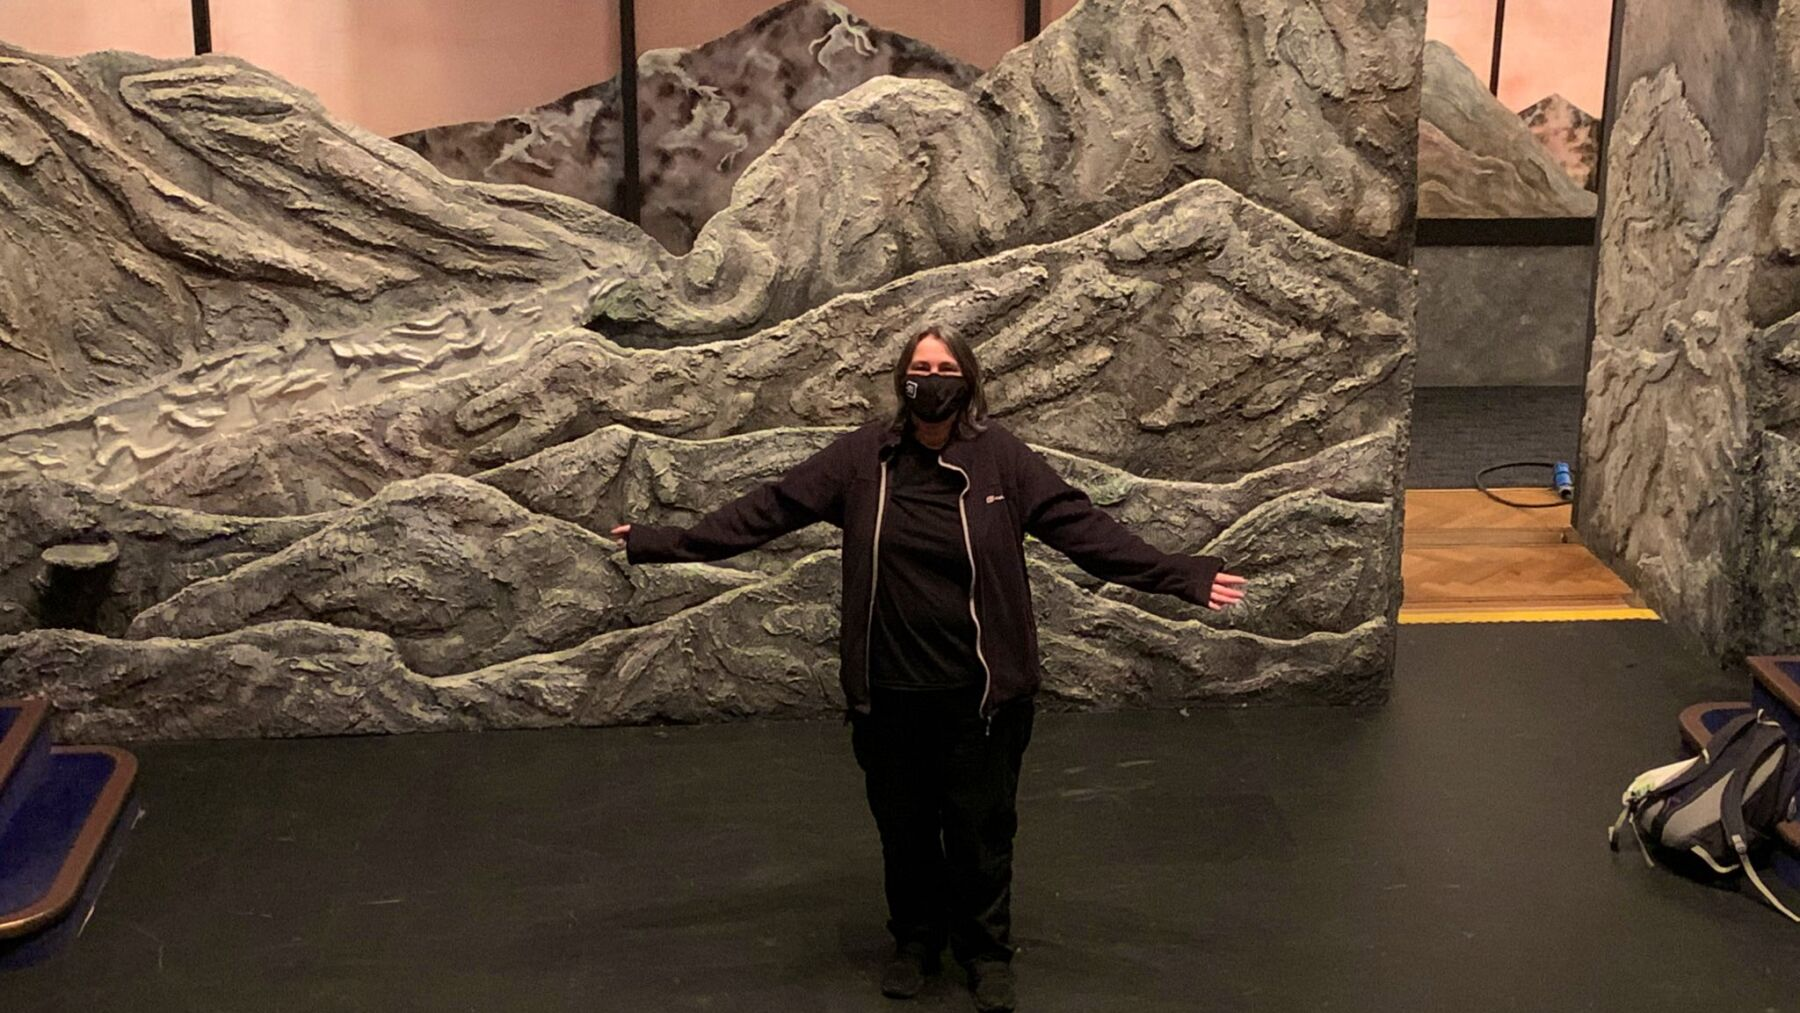 Lin stood with her arms outstretched on a set of caves and rocks